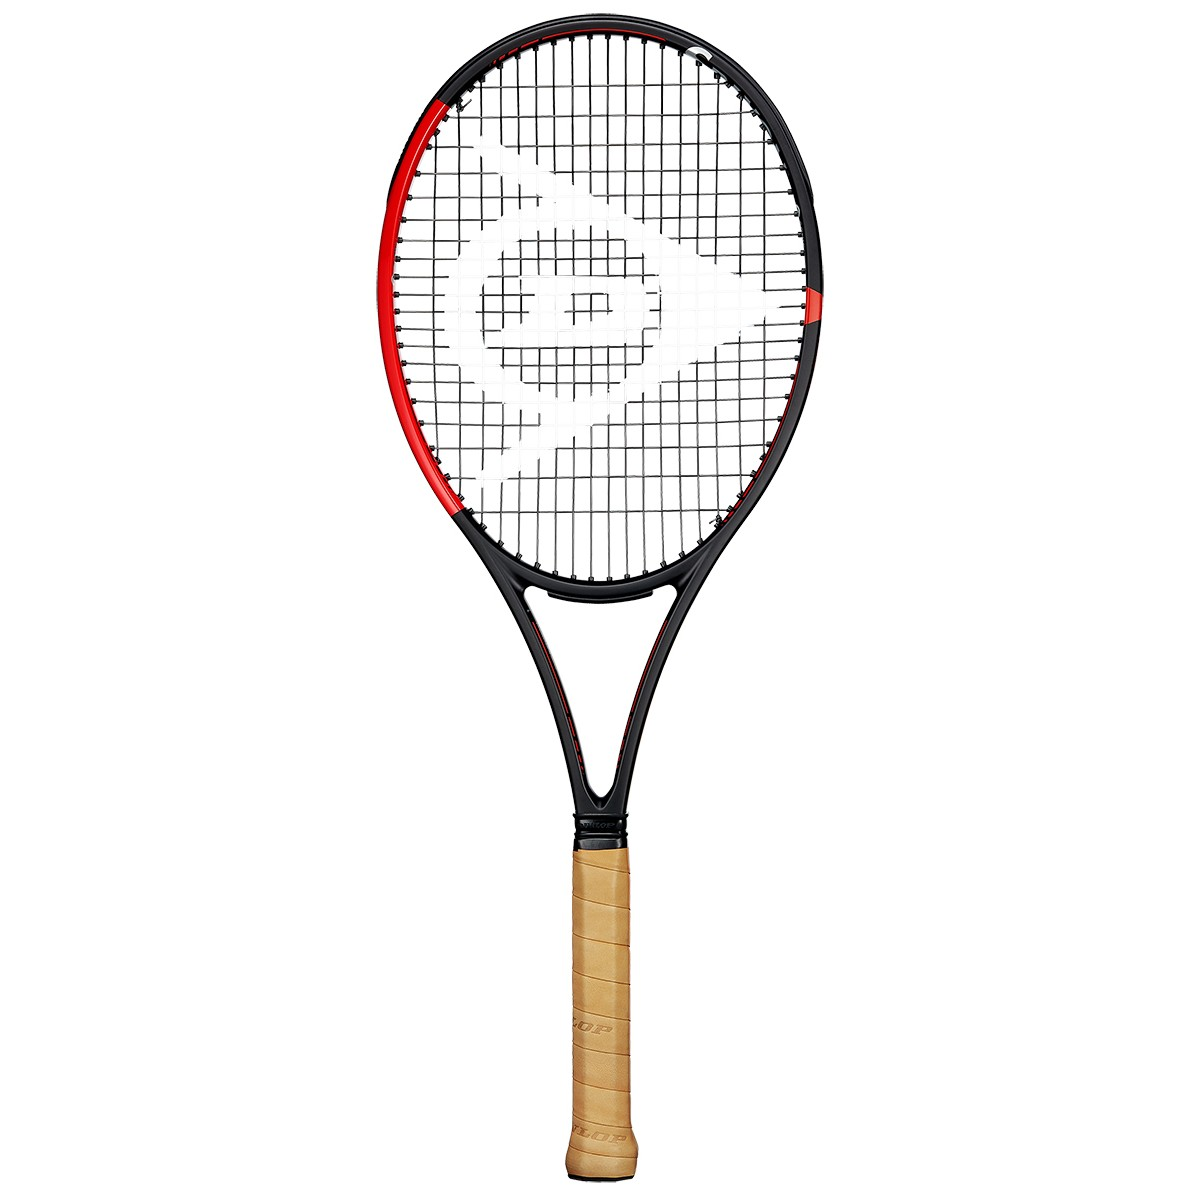 DUNLOP CX 200 TOUR 18*20 TENNISRACKET (315 GR)